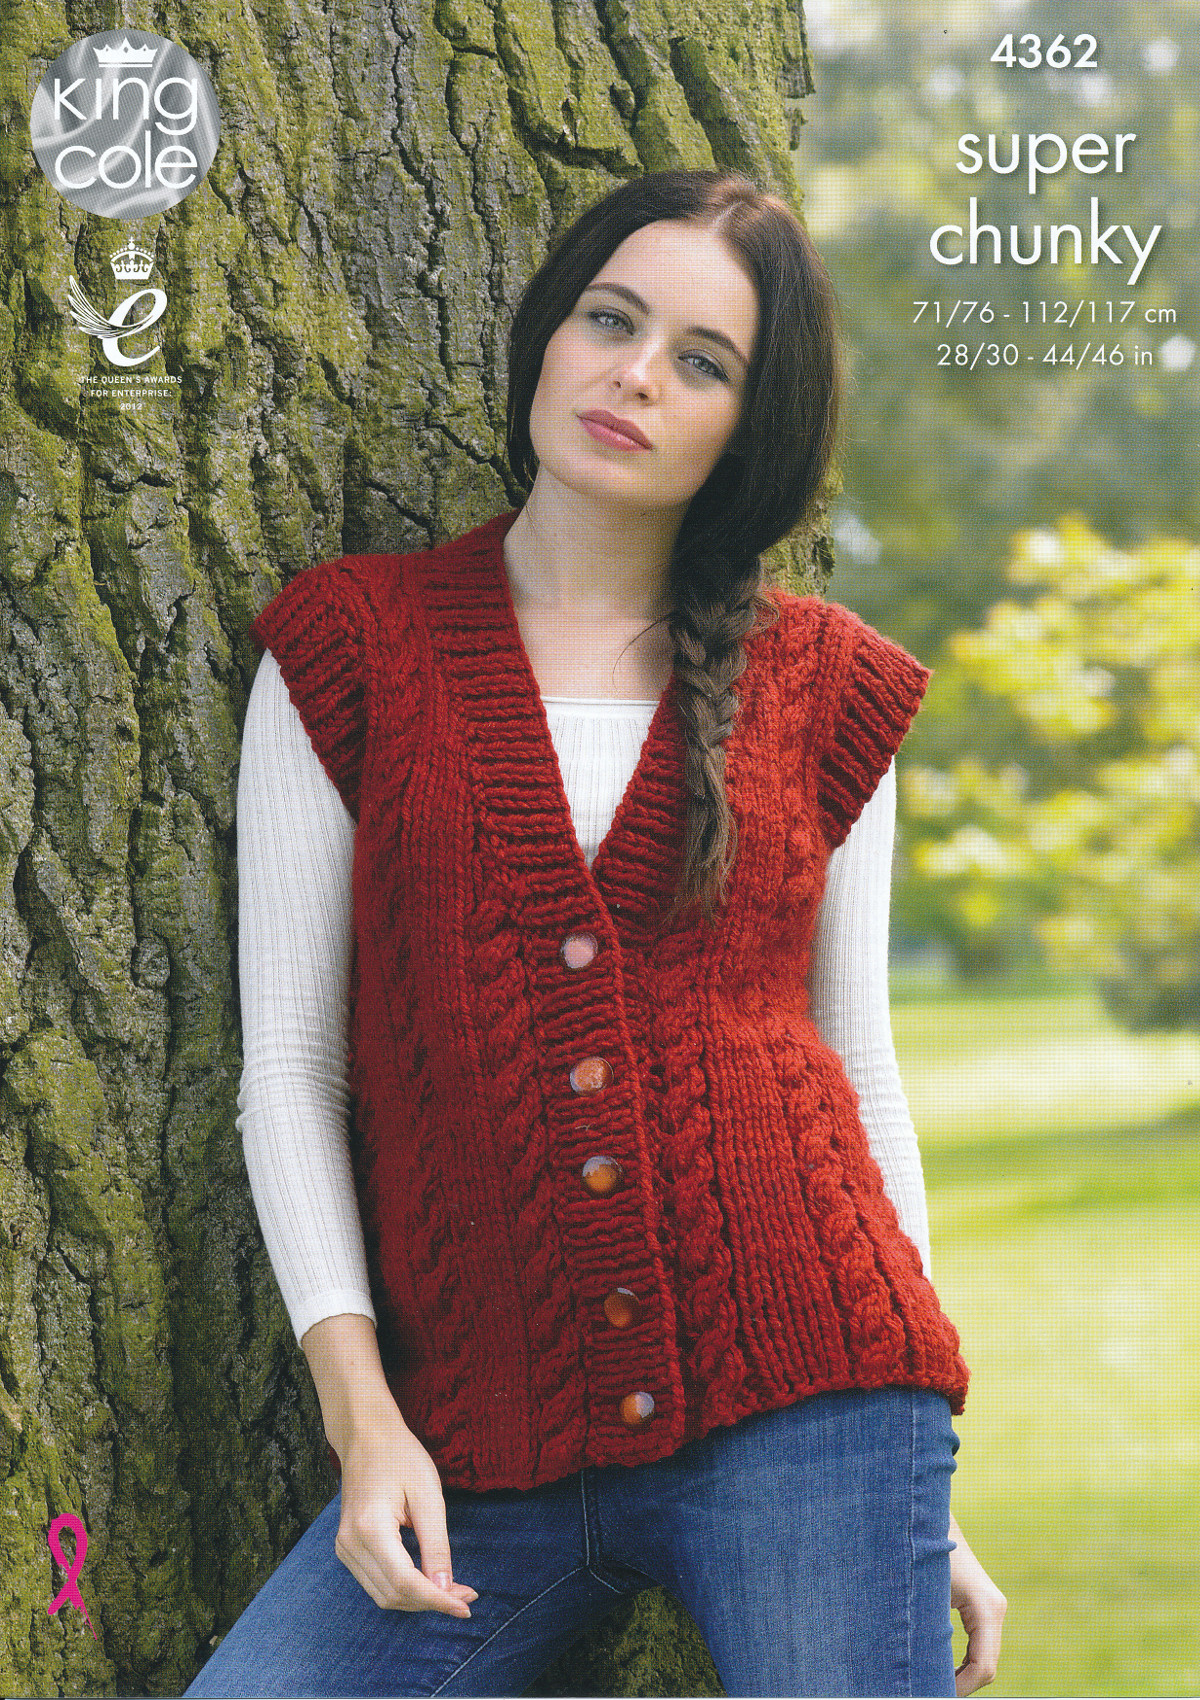 King cole ladies super chunky knitting pattern cable knit item description bankloansurffo Image collections